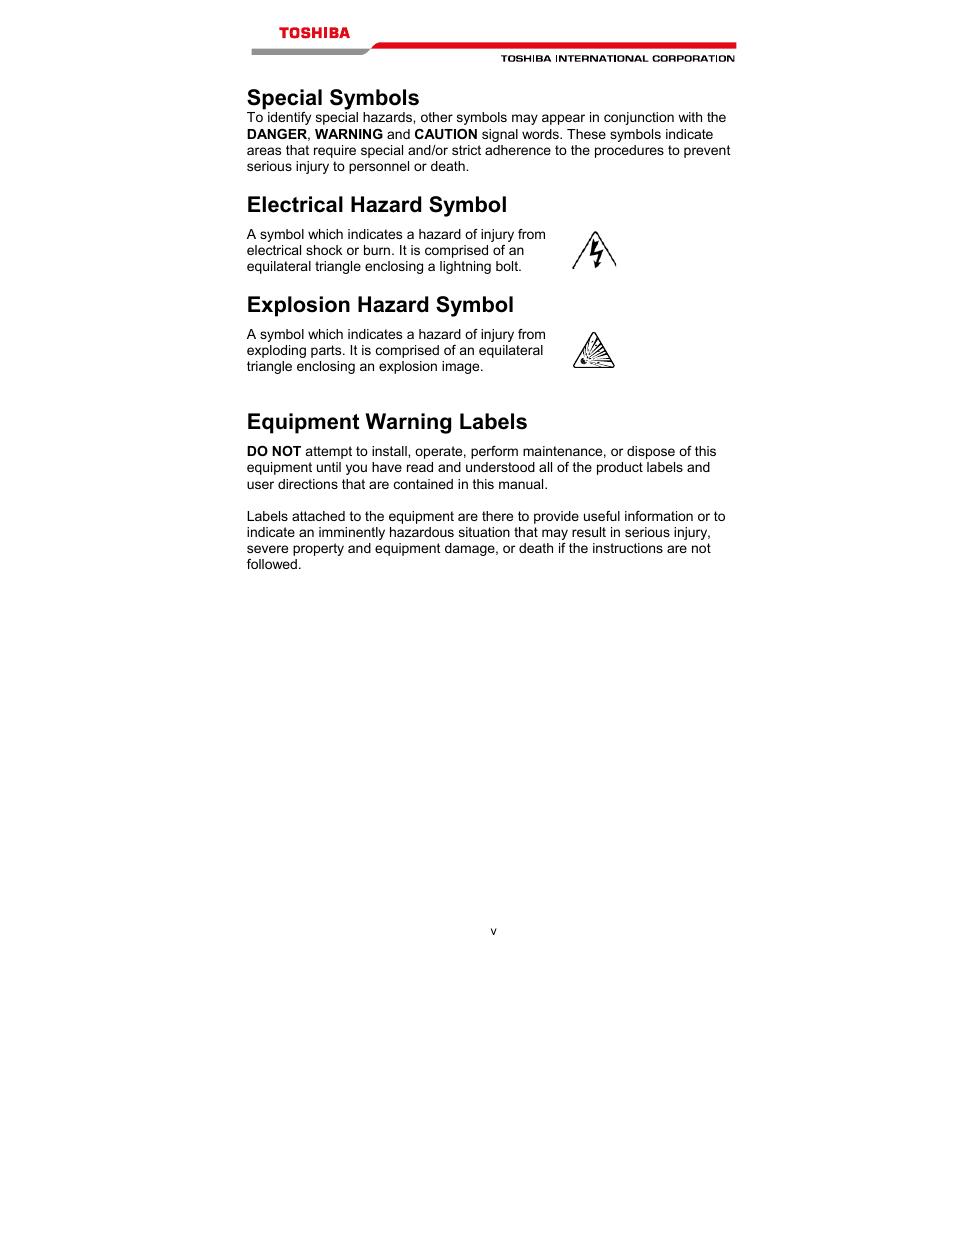 medium resolution of special symbols electrical hazard symbol explosion hazard symbol equipment warning labels toshiba